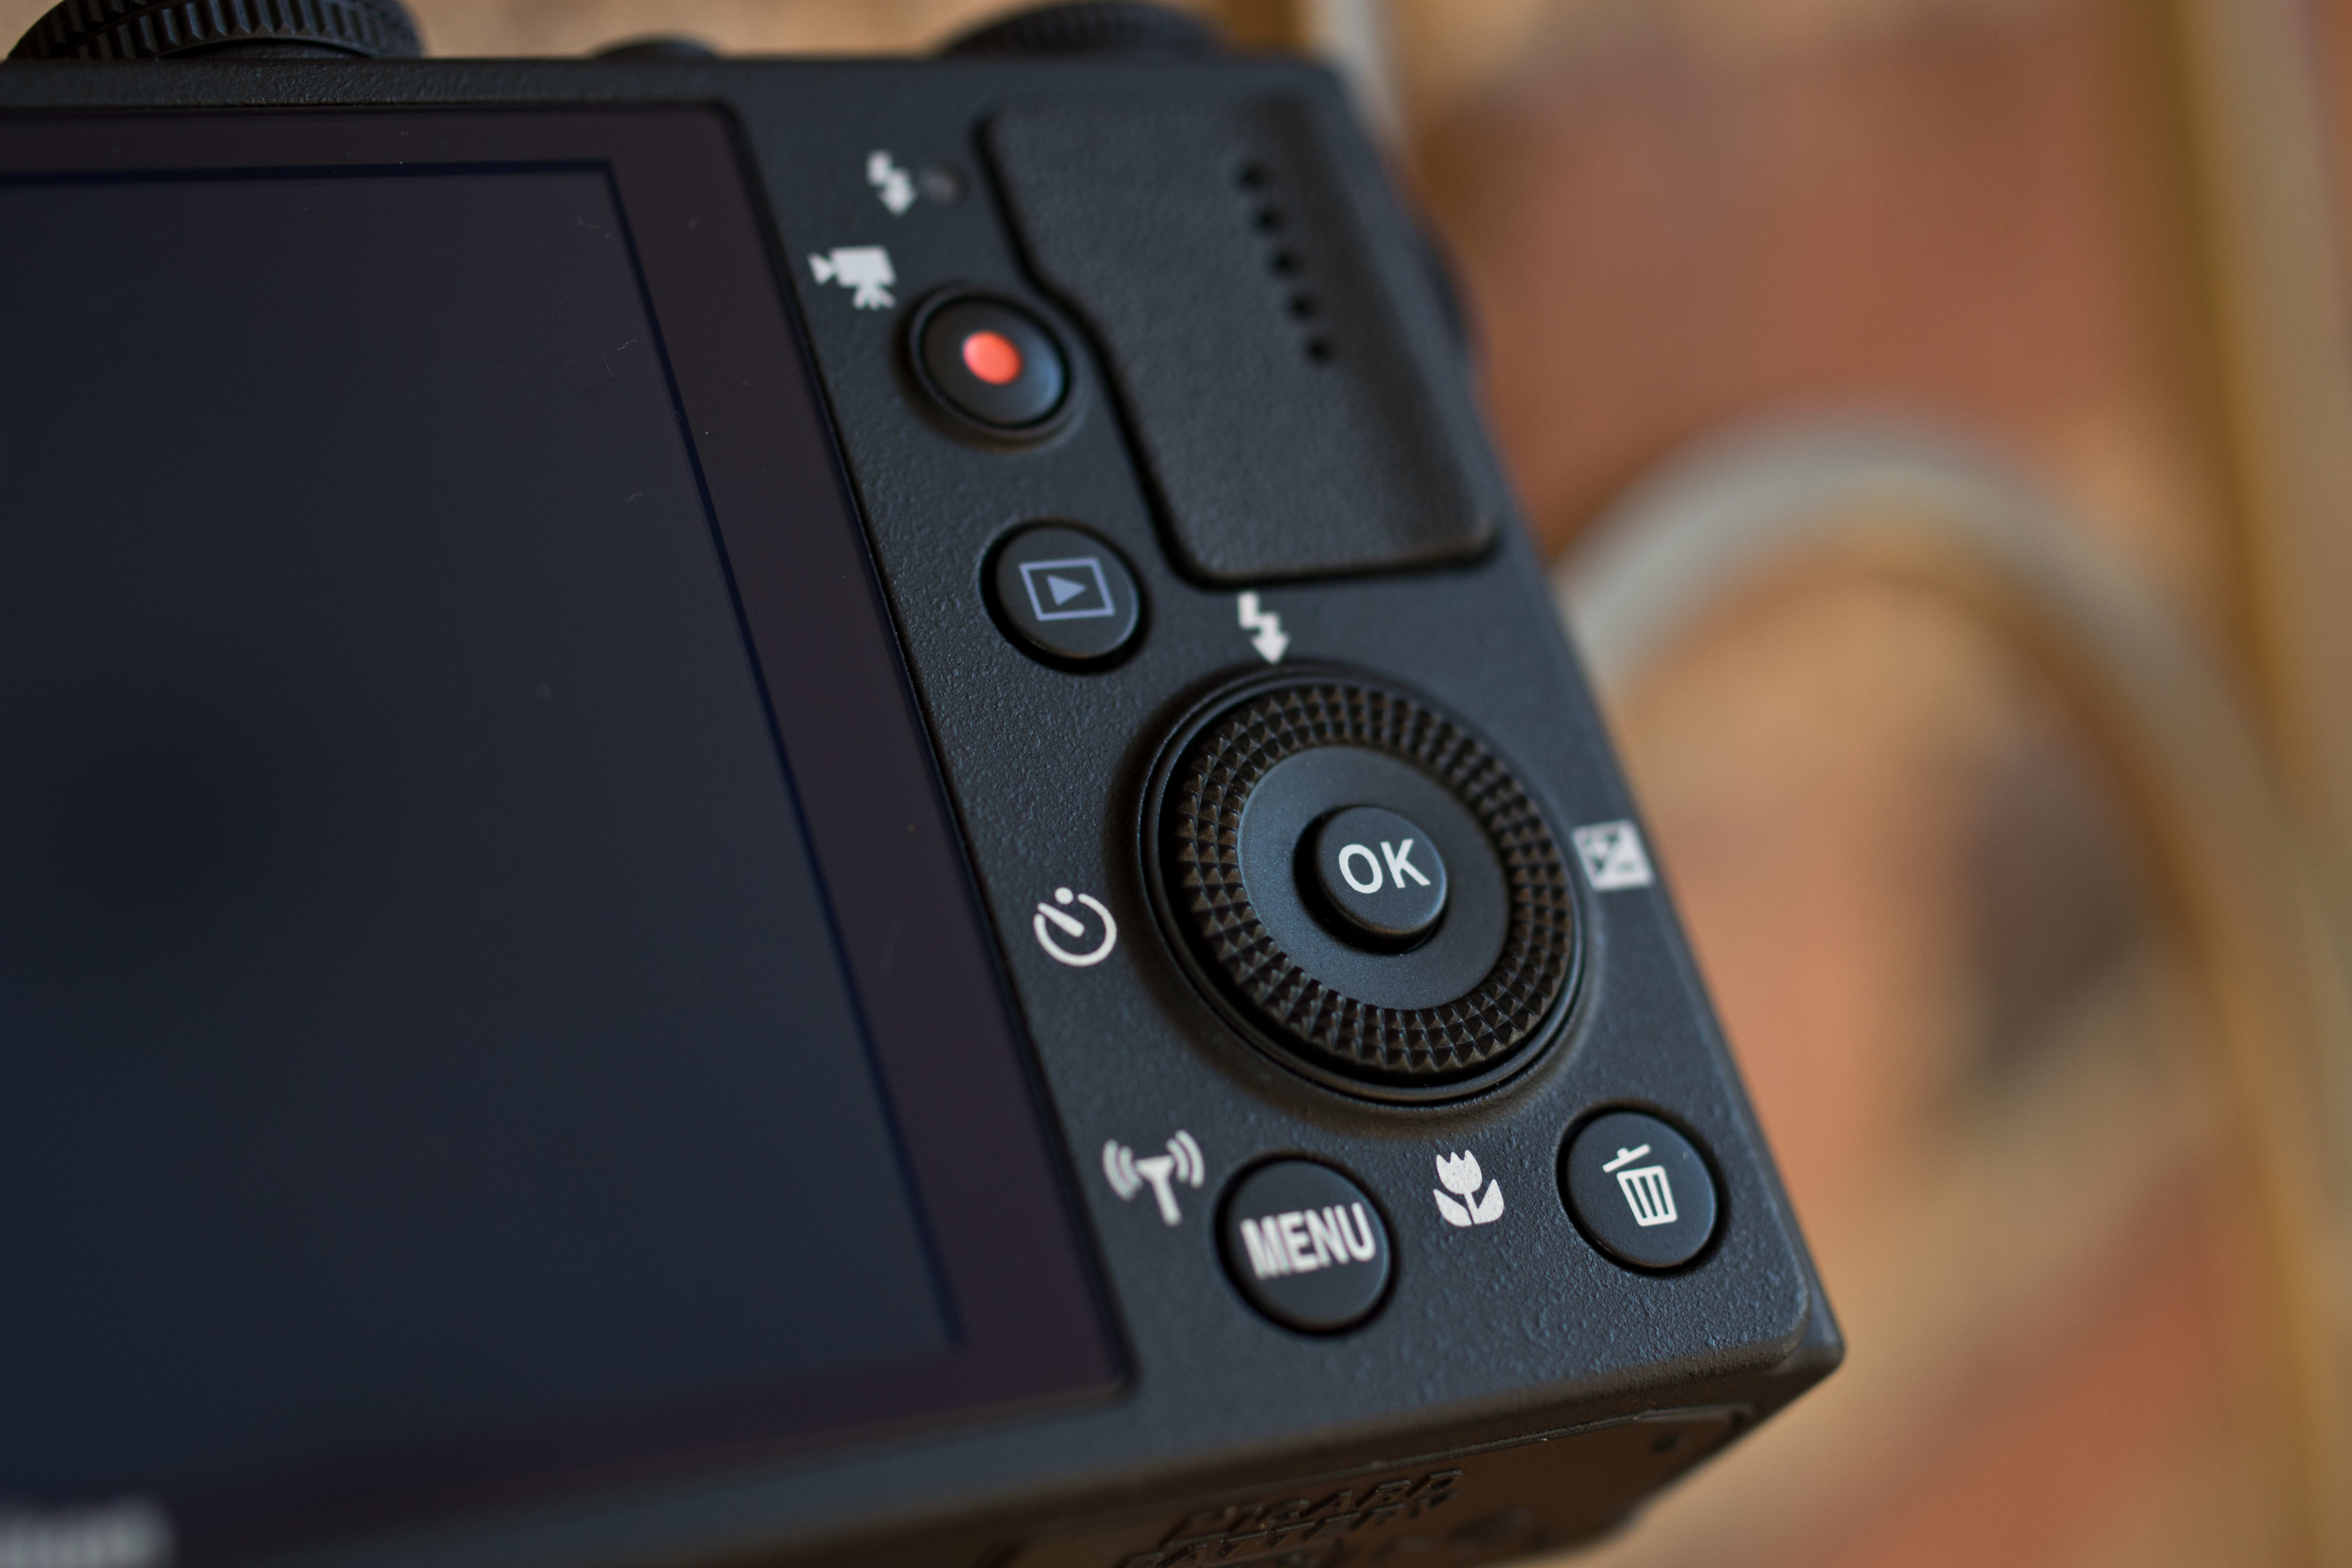 A photograph of the Nikon Coolpix P340's rear controls.